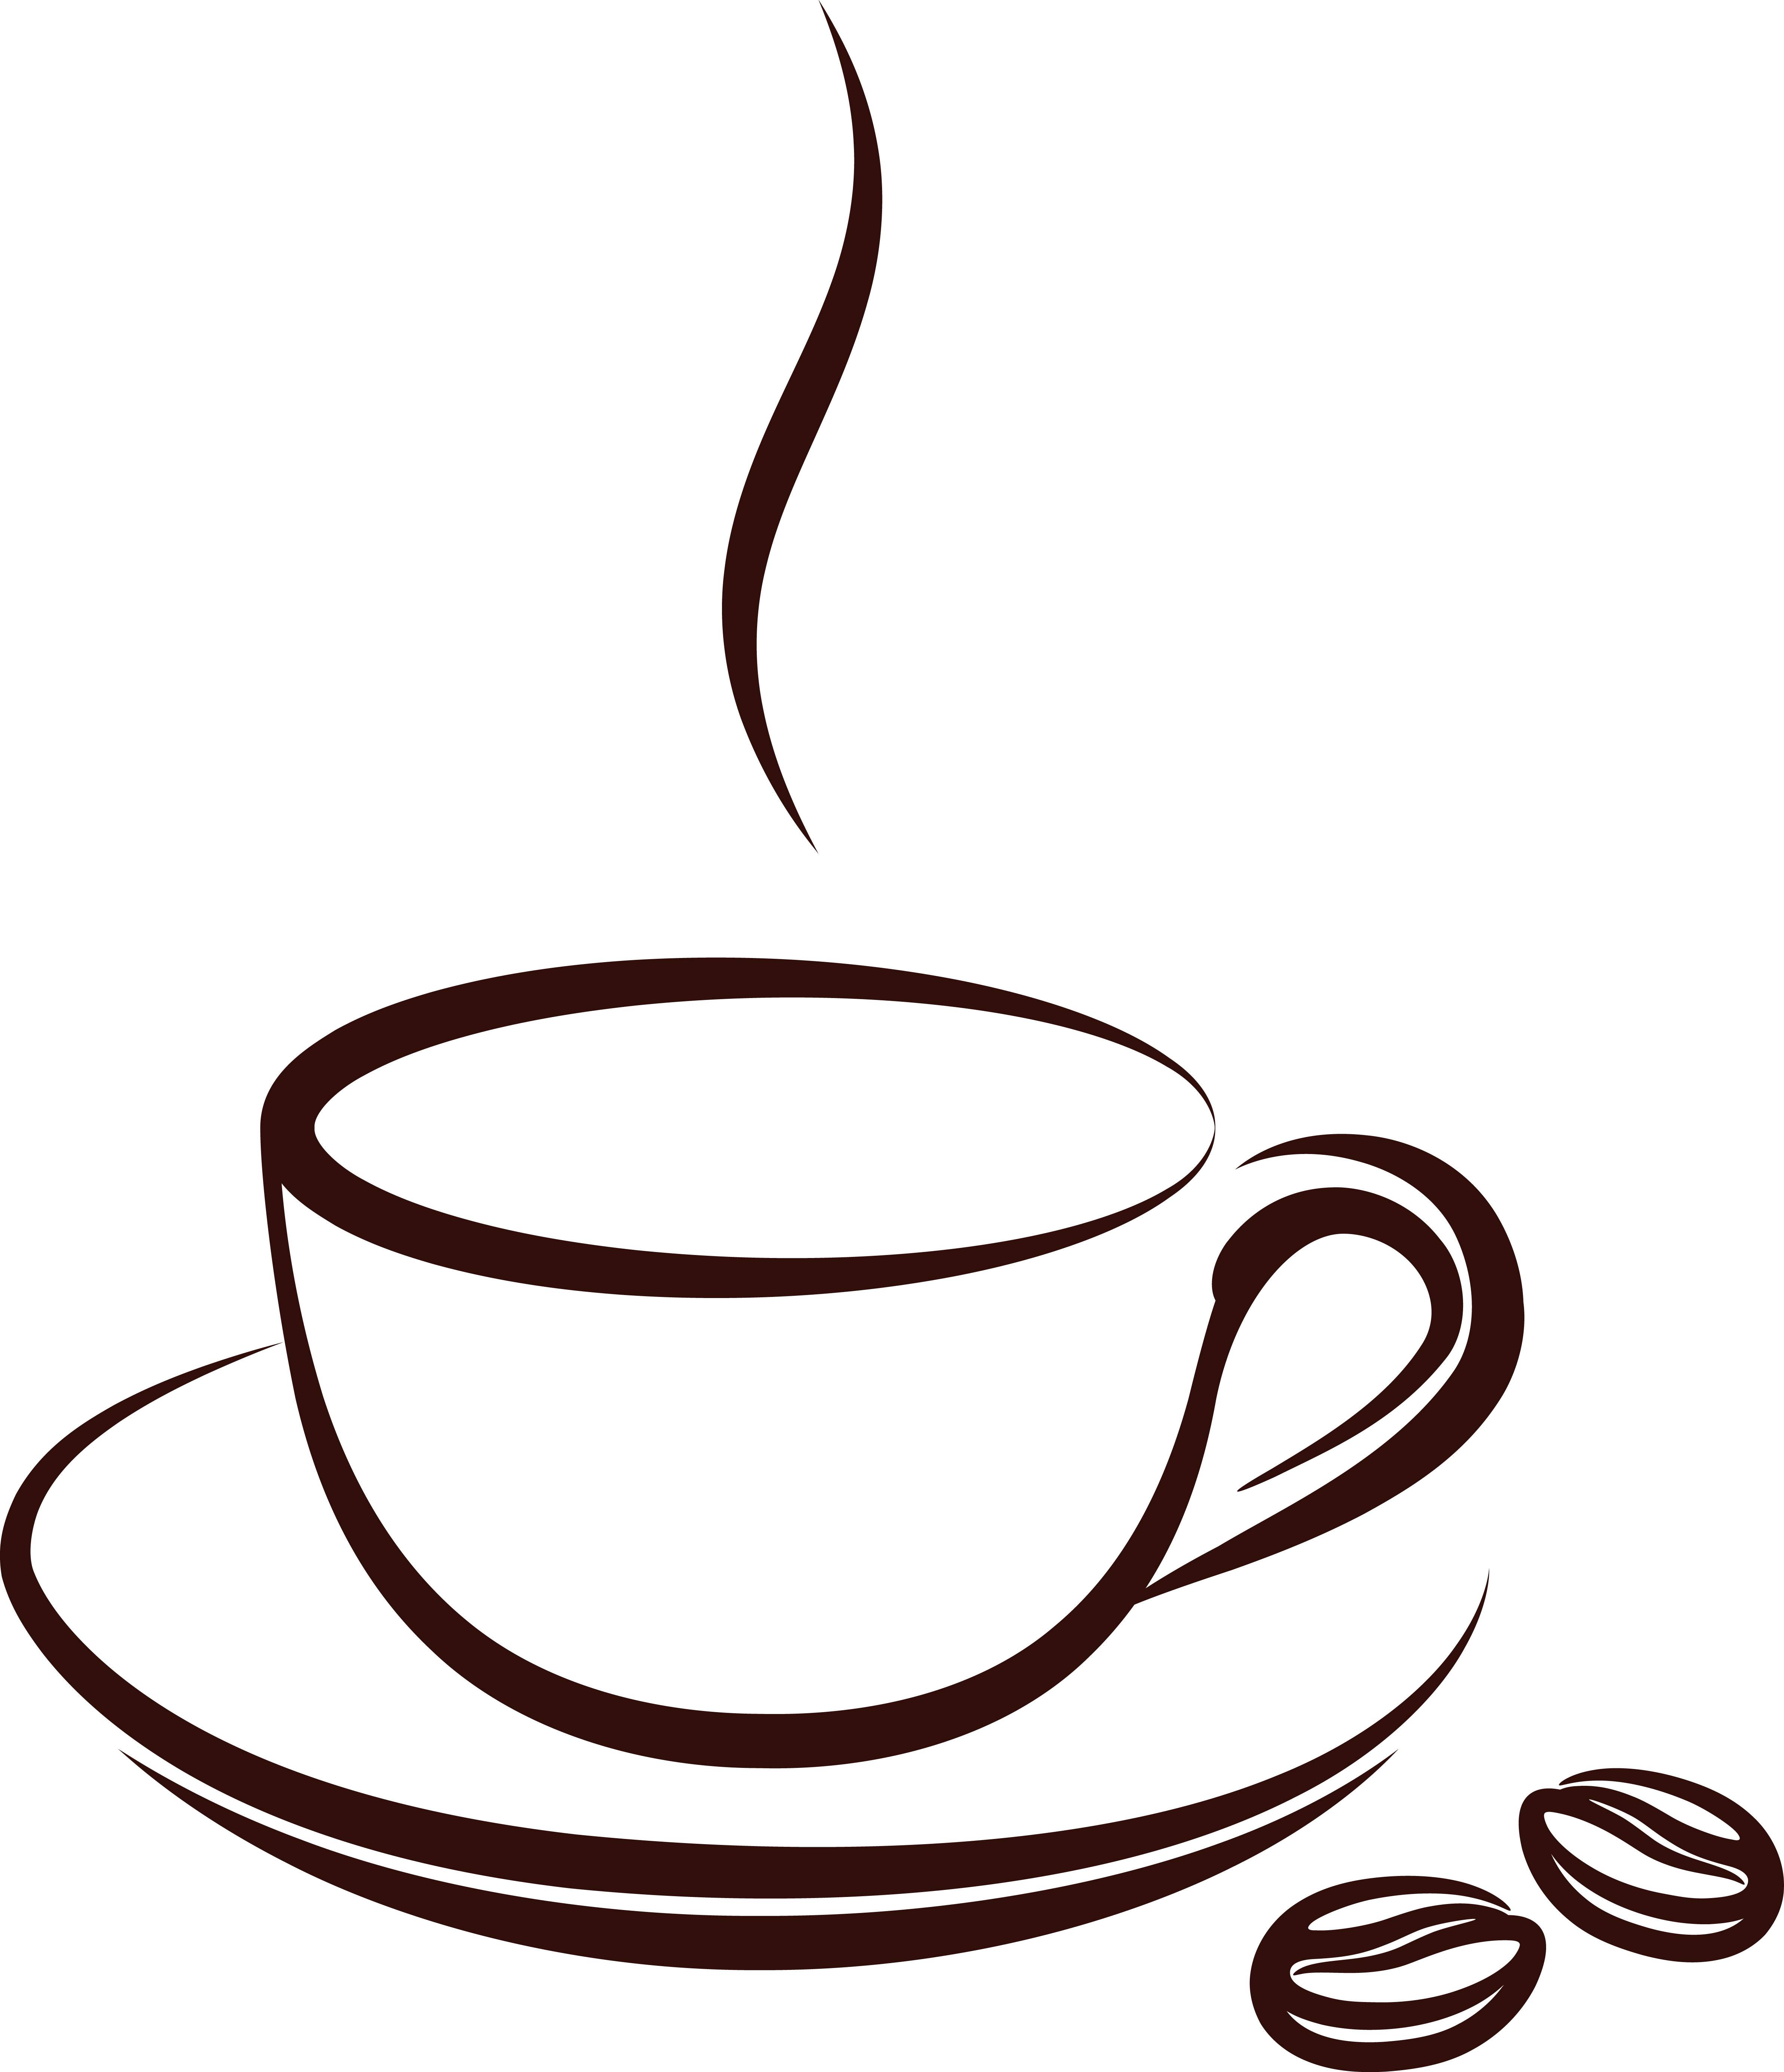 Coffee cup png animated. Free download clip art